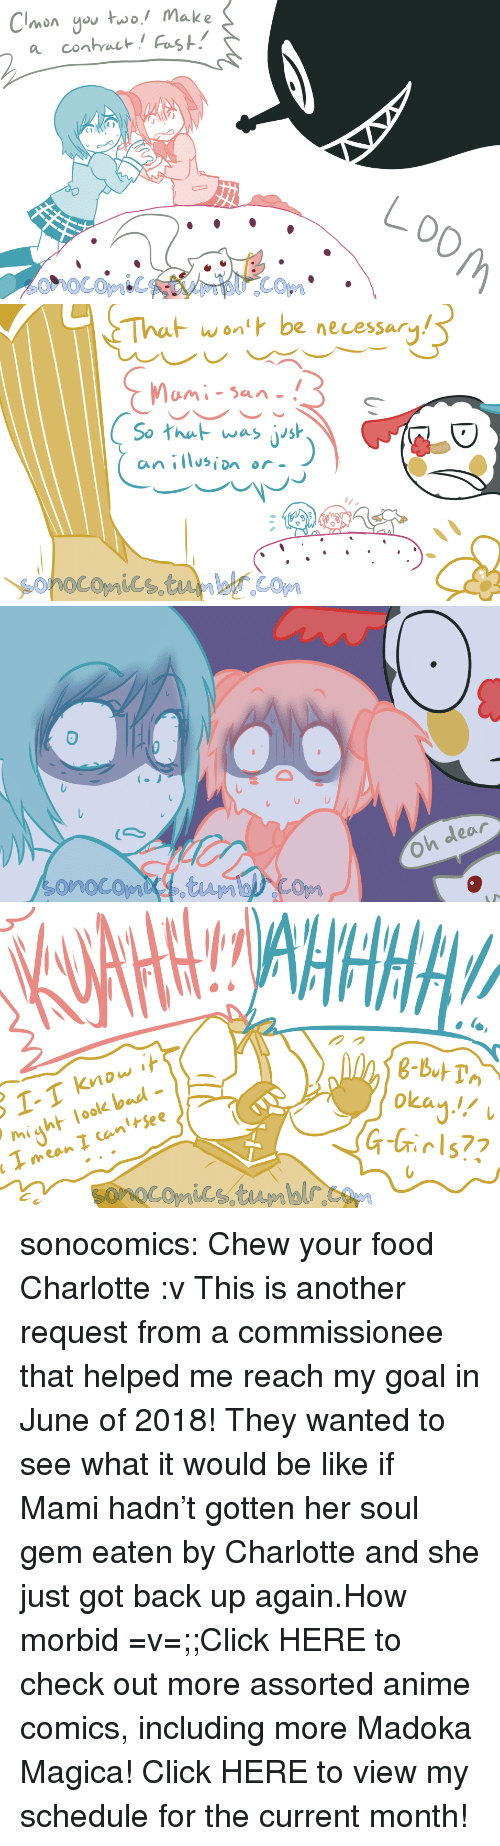 Anime, Bad, and Be Like: Clonyo uwo! Make   wont be necessary  So hu was jish  an isin or  フ   Oh dear   ol-  might look bad-  okan!  eow  רו sonocomics:  Chew your food Charlotte :v This is another request from a commissionee that helped me reach my goal in June of 2018!  They wanted to see what it would be like if Mami hadn't gotten her soul gem eaten by Charlotte and she just got back up again.How morbid =v=;;Click HERE to check out more assorted anime comics, including more Madoka Magica! Click HERE to view my schedule for the current month!